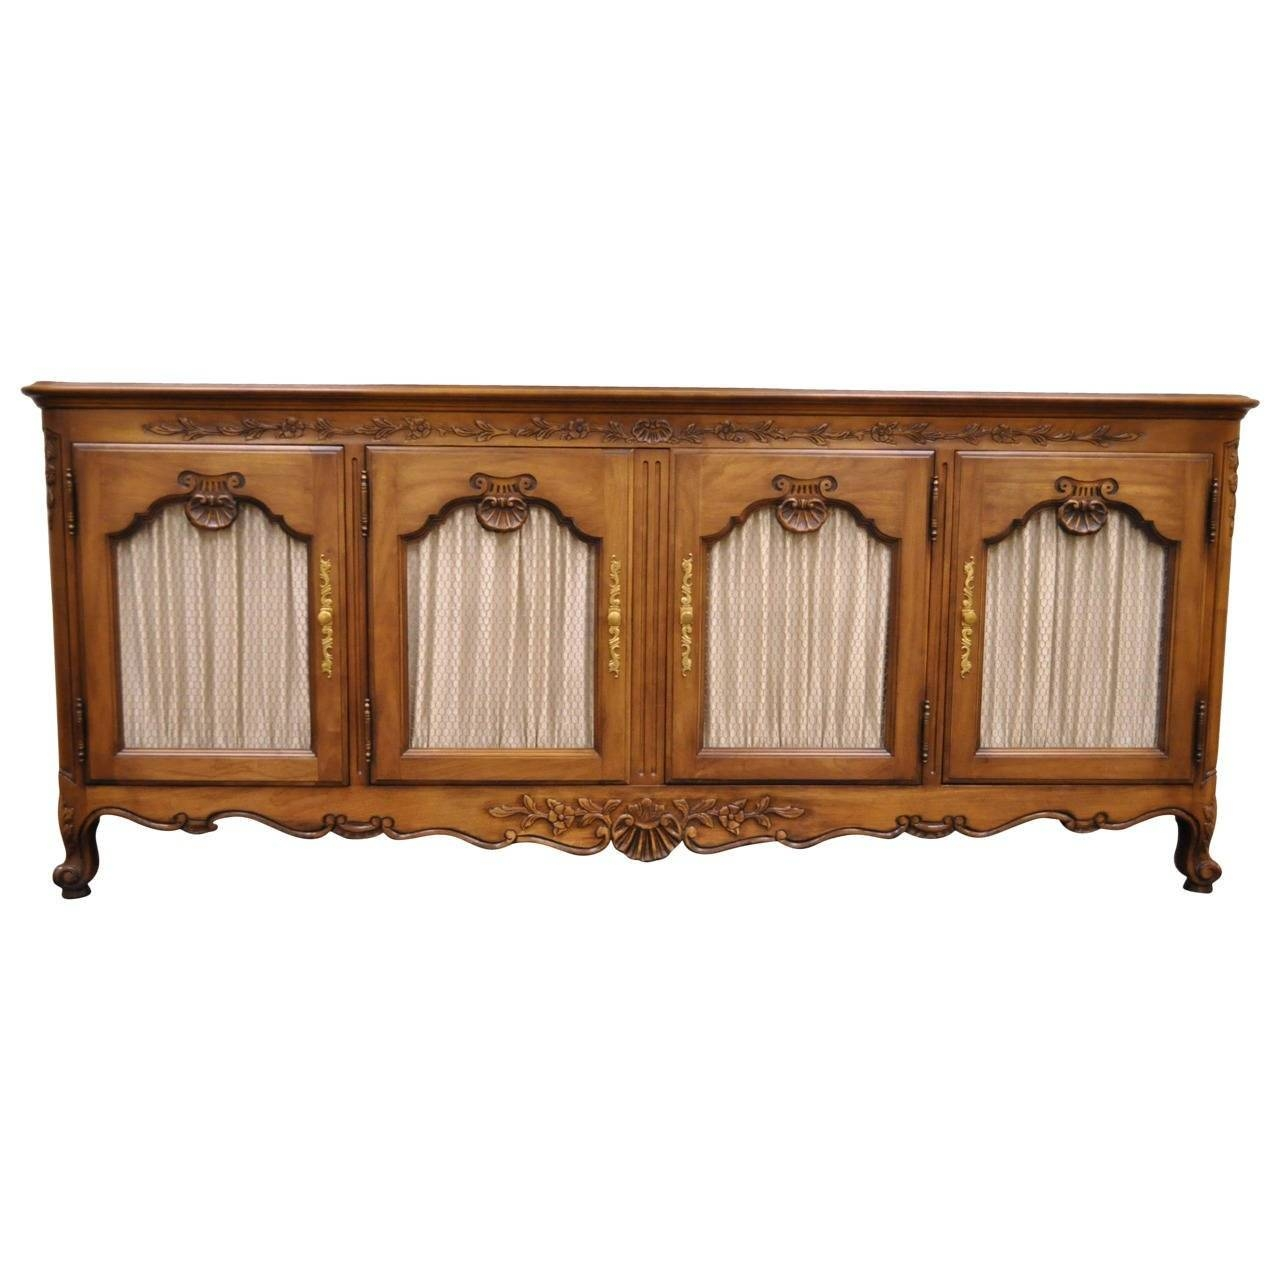 Hand-Carved French Country Or Louis Xv Style Vintage Sideboard inside French Country Sideboards (Image 20 of 30)